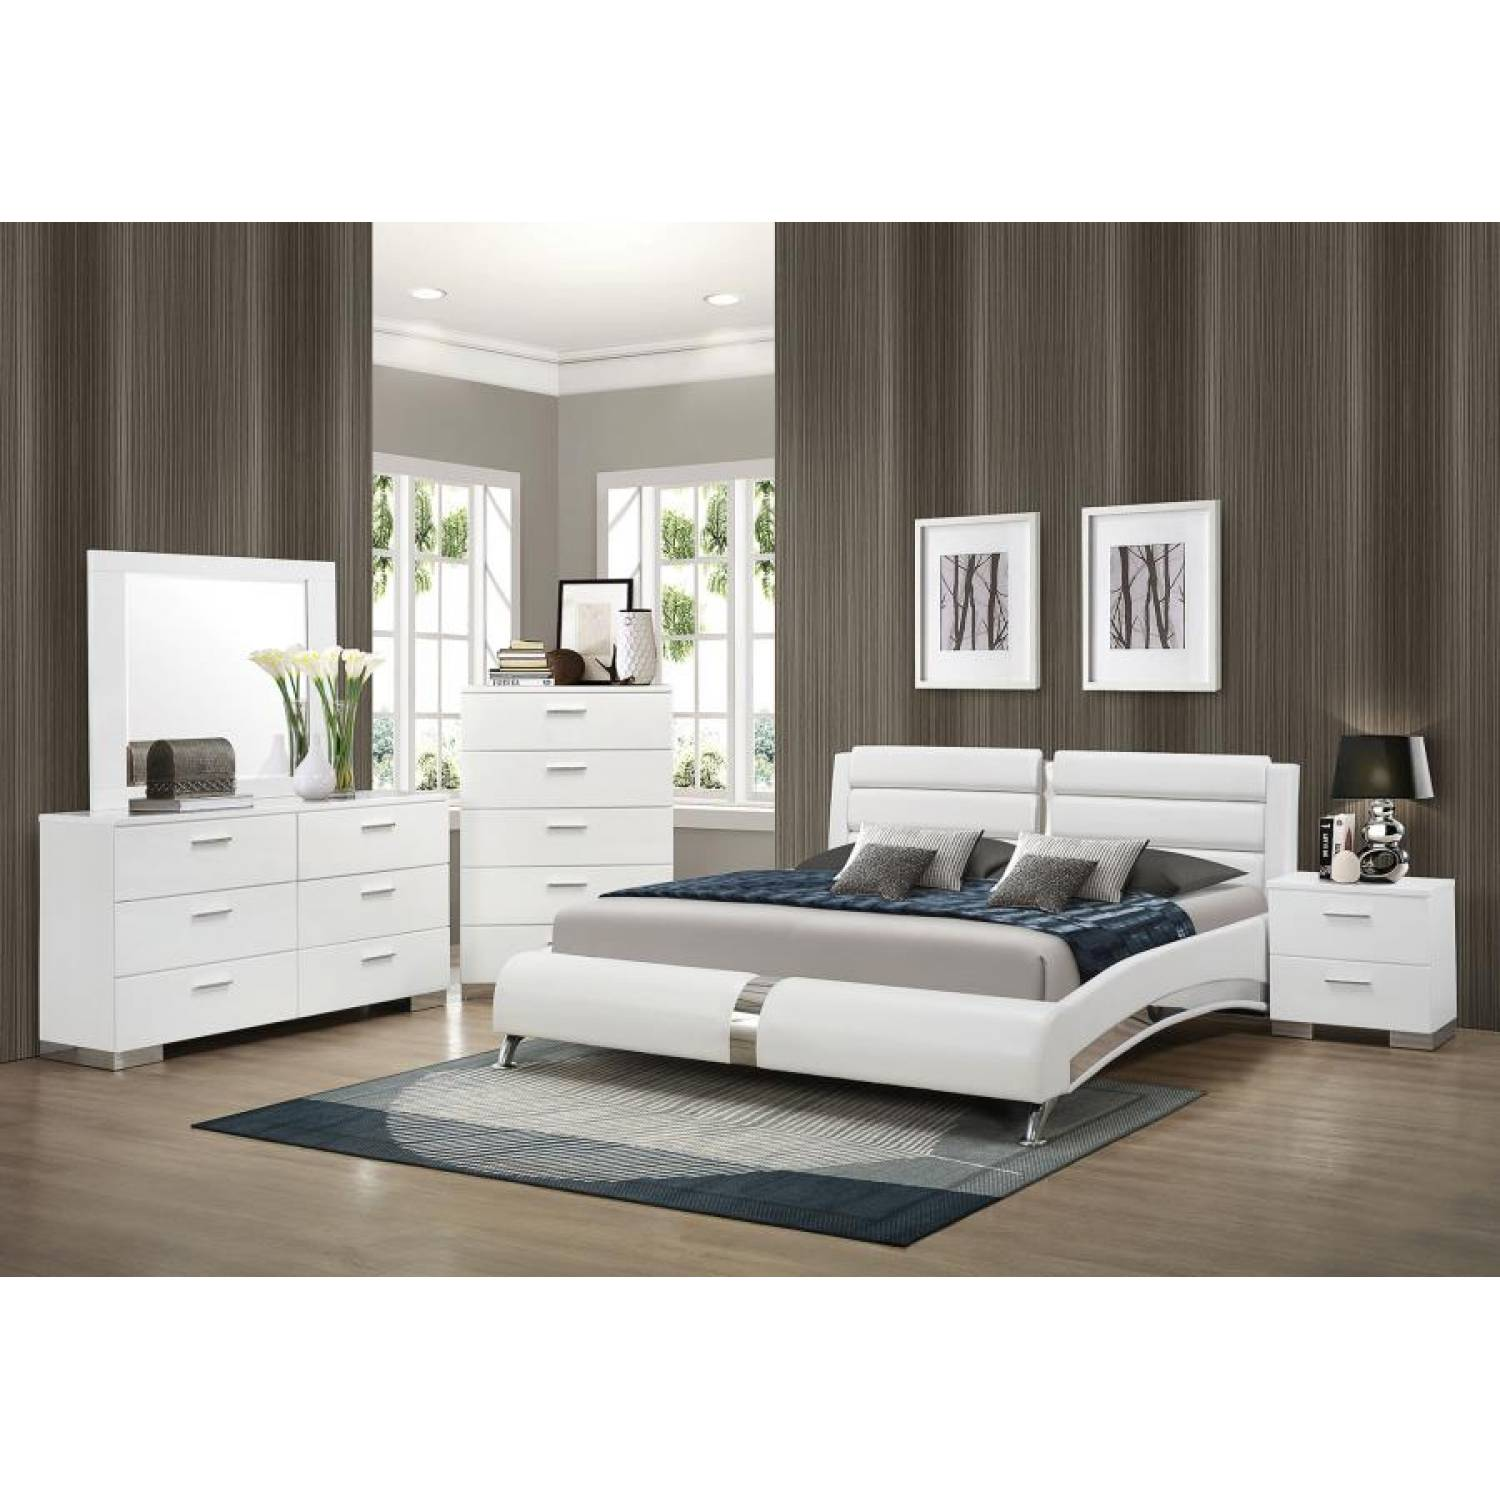 Felicity Contemporary White Upholstered Queen Bed BEDROOM 5PC SET  (KE.BED,NS,DR,MR) 300345Q-S4